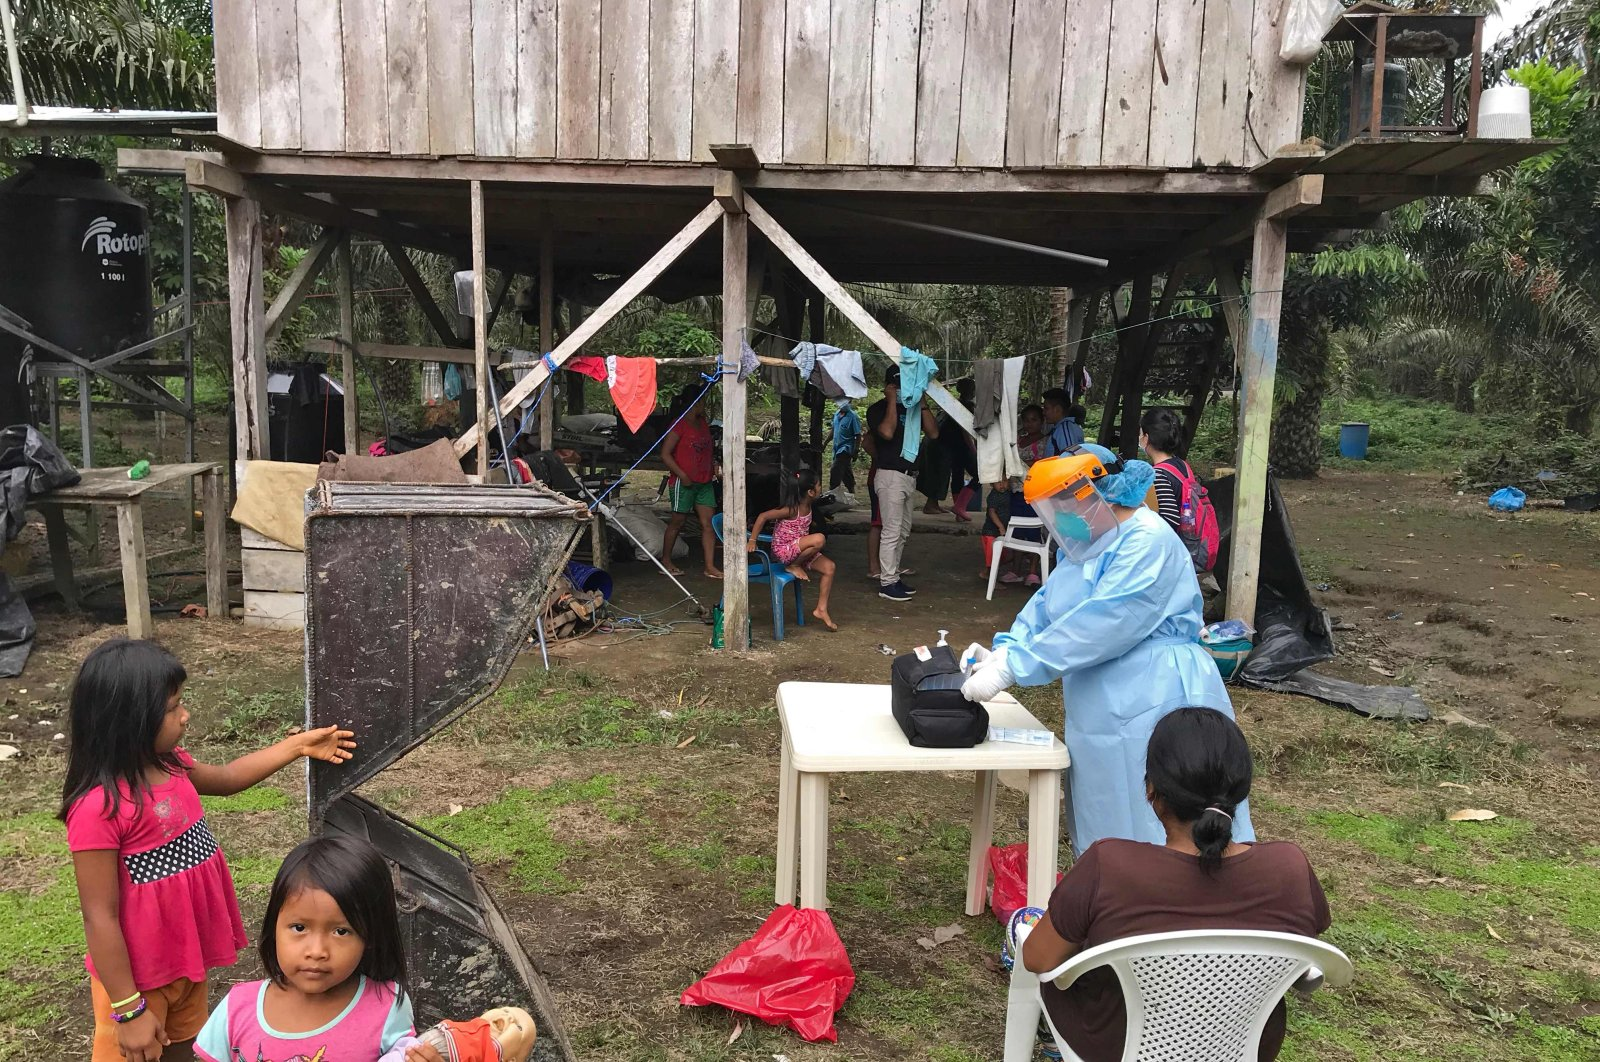 This handout photo released by the NGO Amazon Frontline & Alianza Ceibo shows Ecuador's Health Ministry personnel testing Siekopai nation members for COVID-19 in the community of San Pablo, Ecuador, April 29, 2020. (AFP Photo)